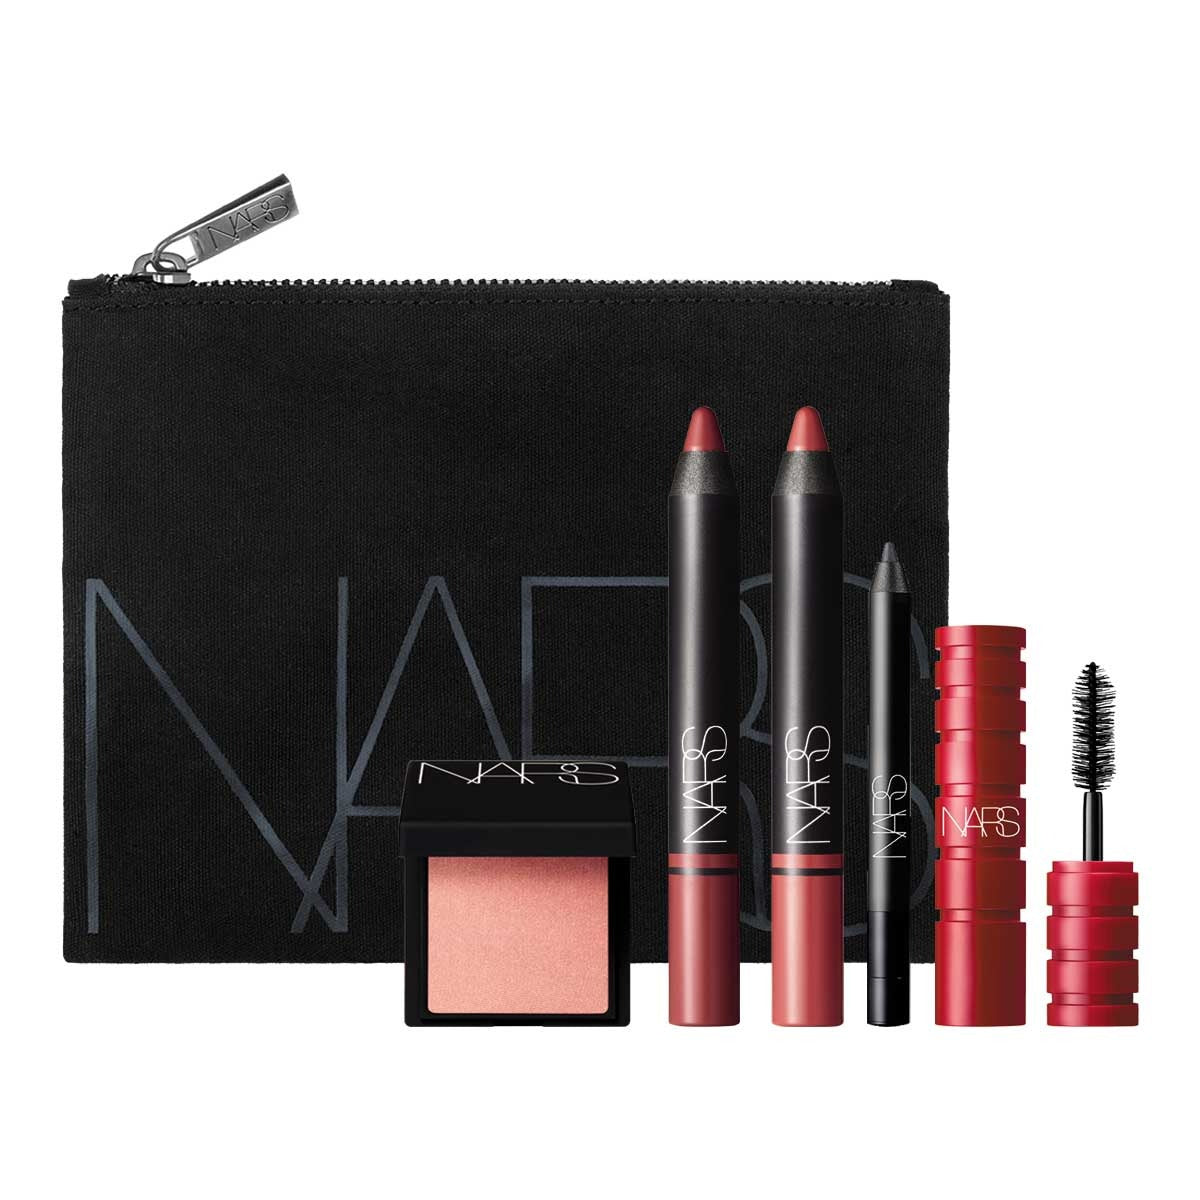 BEAUTY CURATES presents NARS (worth $143)